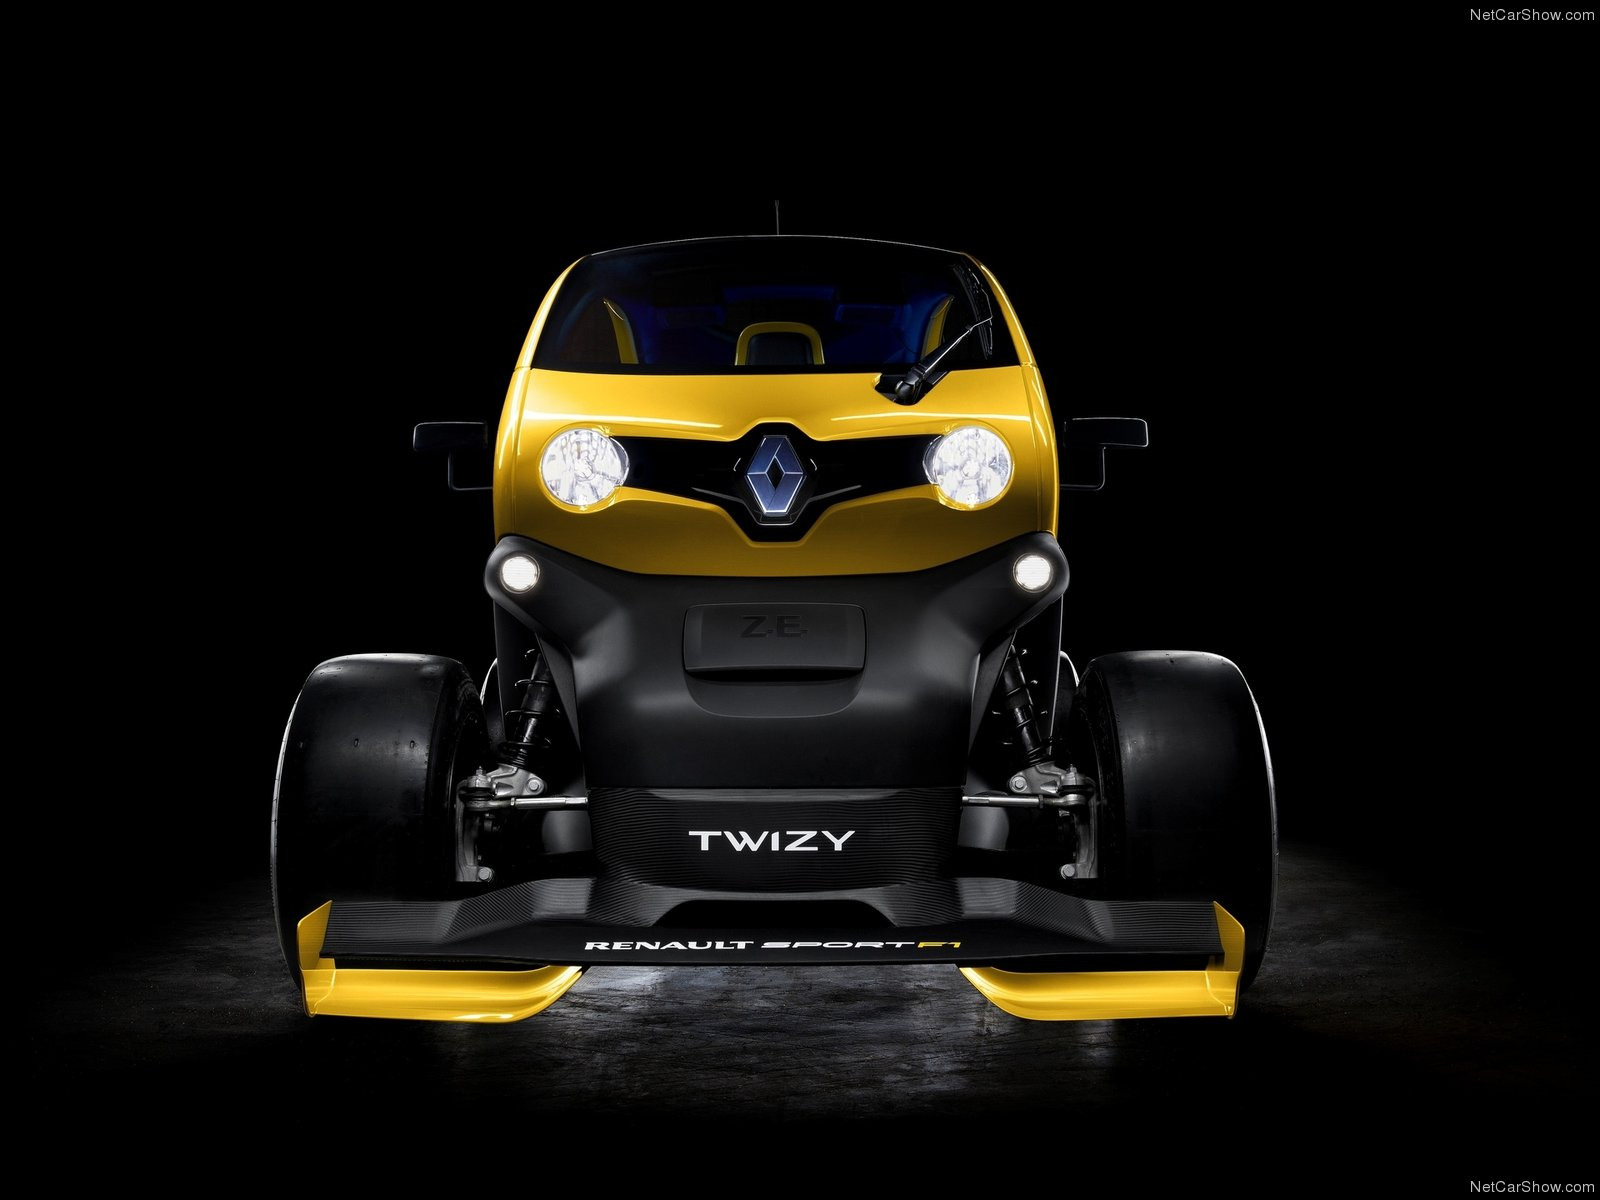 Renault-Twizy_RS_F1_Concept_2013_1600x1200_wallpaper_04.jpg